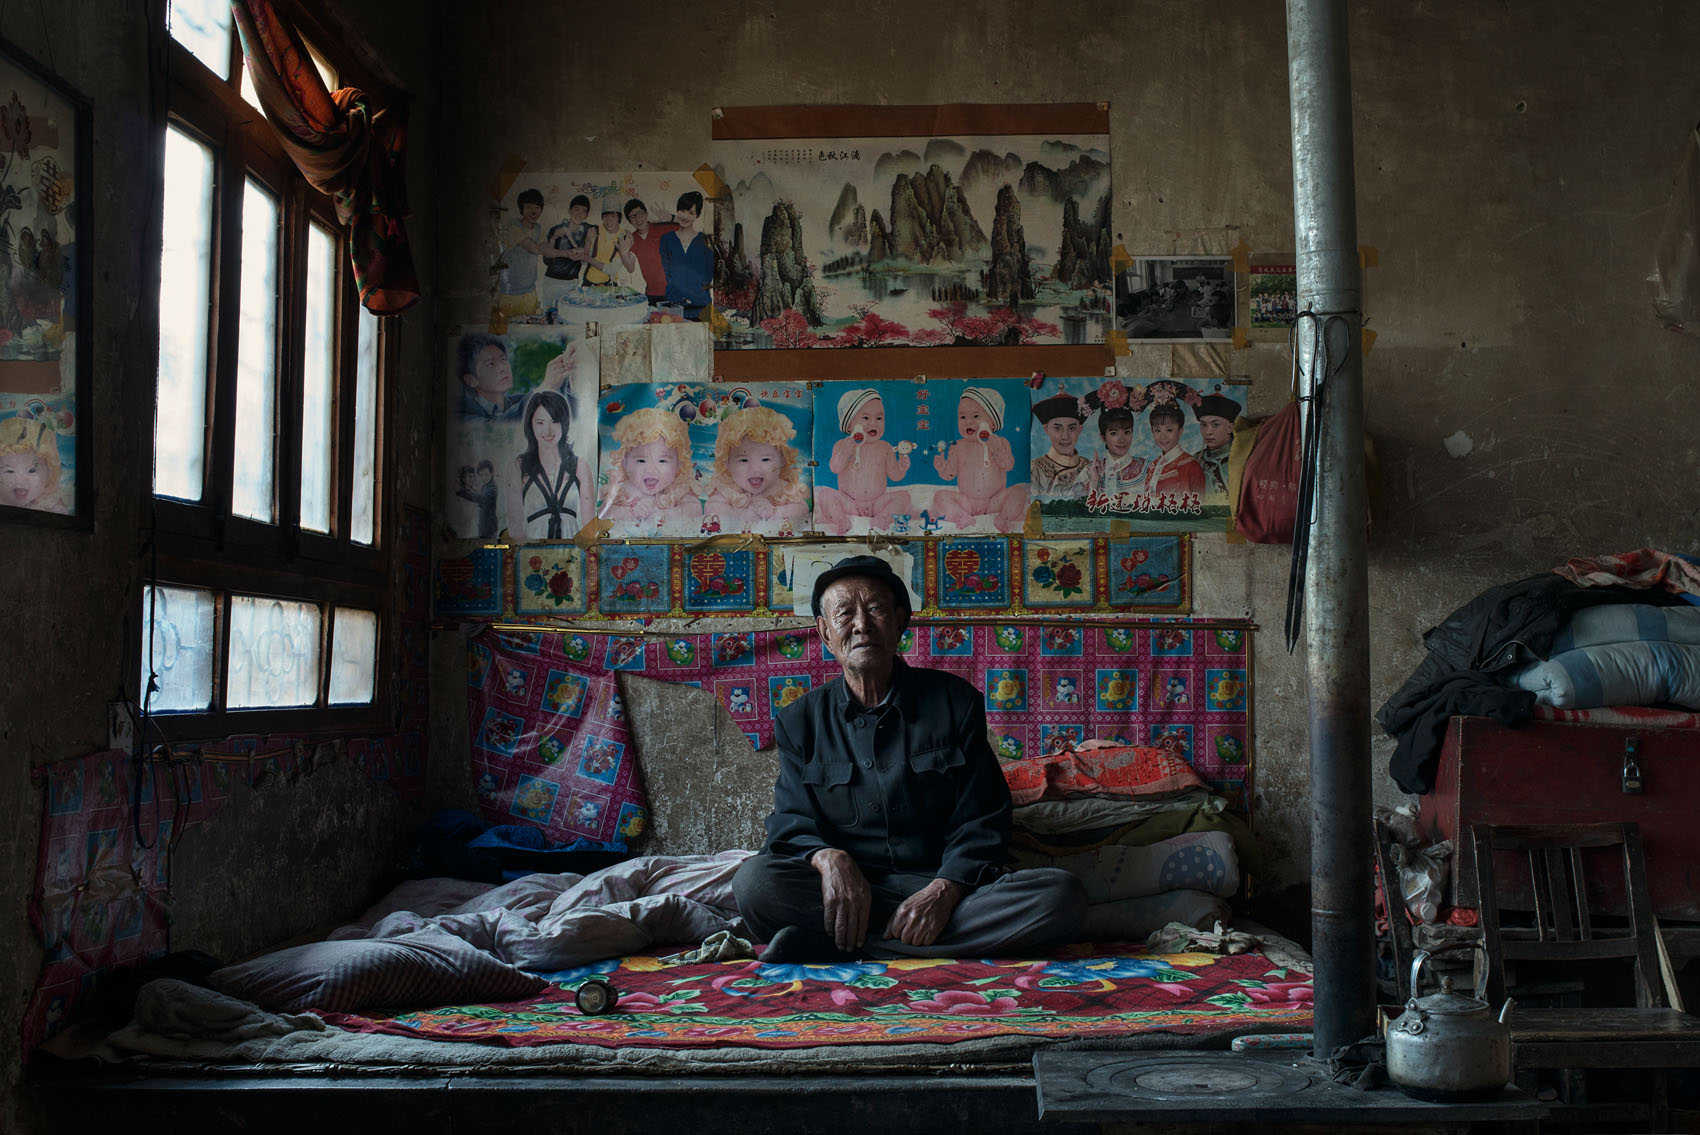 Huangmen Village Zhang Guizi(71) In his home, Zhang has a huge poster of Mao. Even though he complains about the destruction of the local Taoist Temple during the cultural revolution, he worships Mao who he says got his family out of poverty. Before the revolution they were living in a cave with no land of their own.They had to rent half a mu from the temple to be able to farm and had to give back a share of their crops in return. After the Liberation, they were given two mu and a cow but it wasn't until the Cultural Revolution that they didn't have to share their crops with the temple. In the 80's a fake Taoist monk came to live in the temple and was living off the locals' credulity. He died 4 years ago and now the Temple has just been renovated with financial contribution from all villagers. Zhang says it's nowhere near as beautifulas it was before, with poorly made statues and drawings but he is still happy to see it alive again.